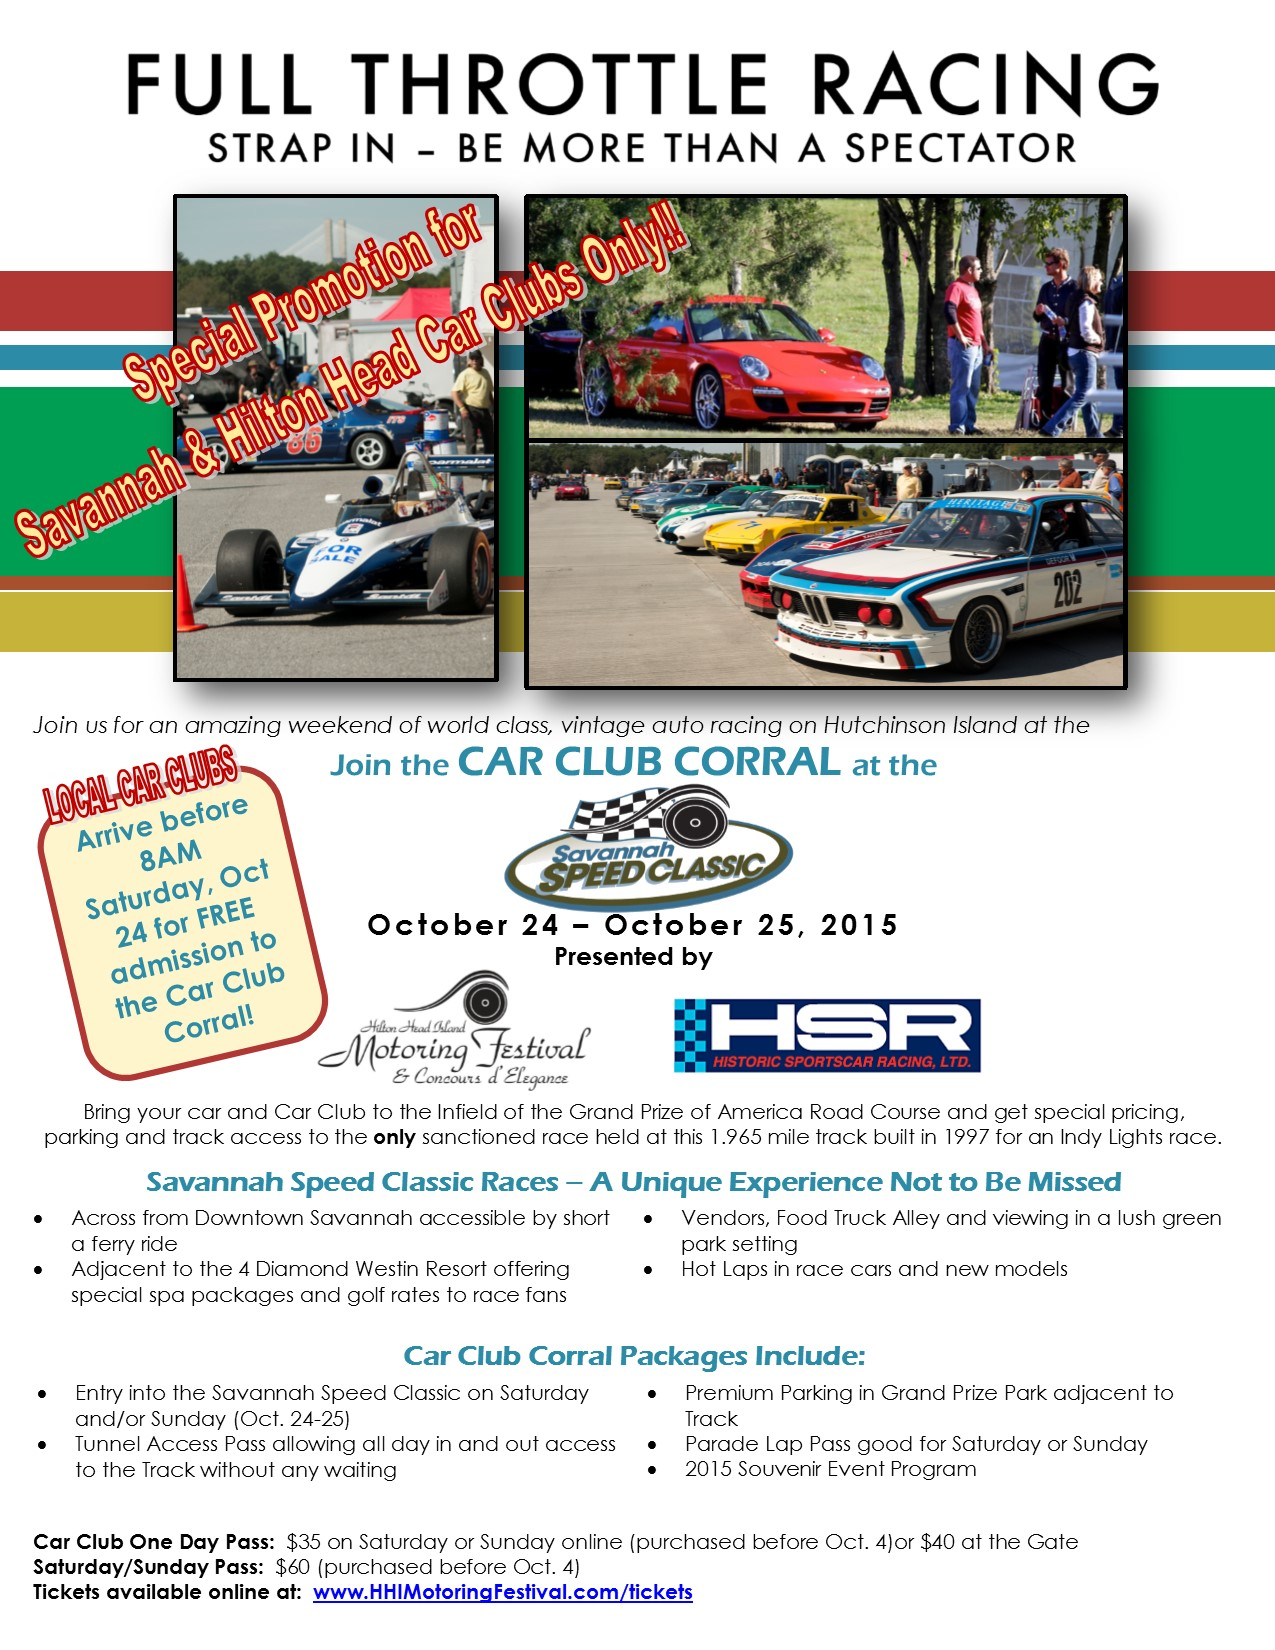 Upcoming Events | Savannah Speed Classic Car Club Corral ...